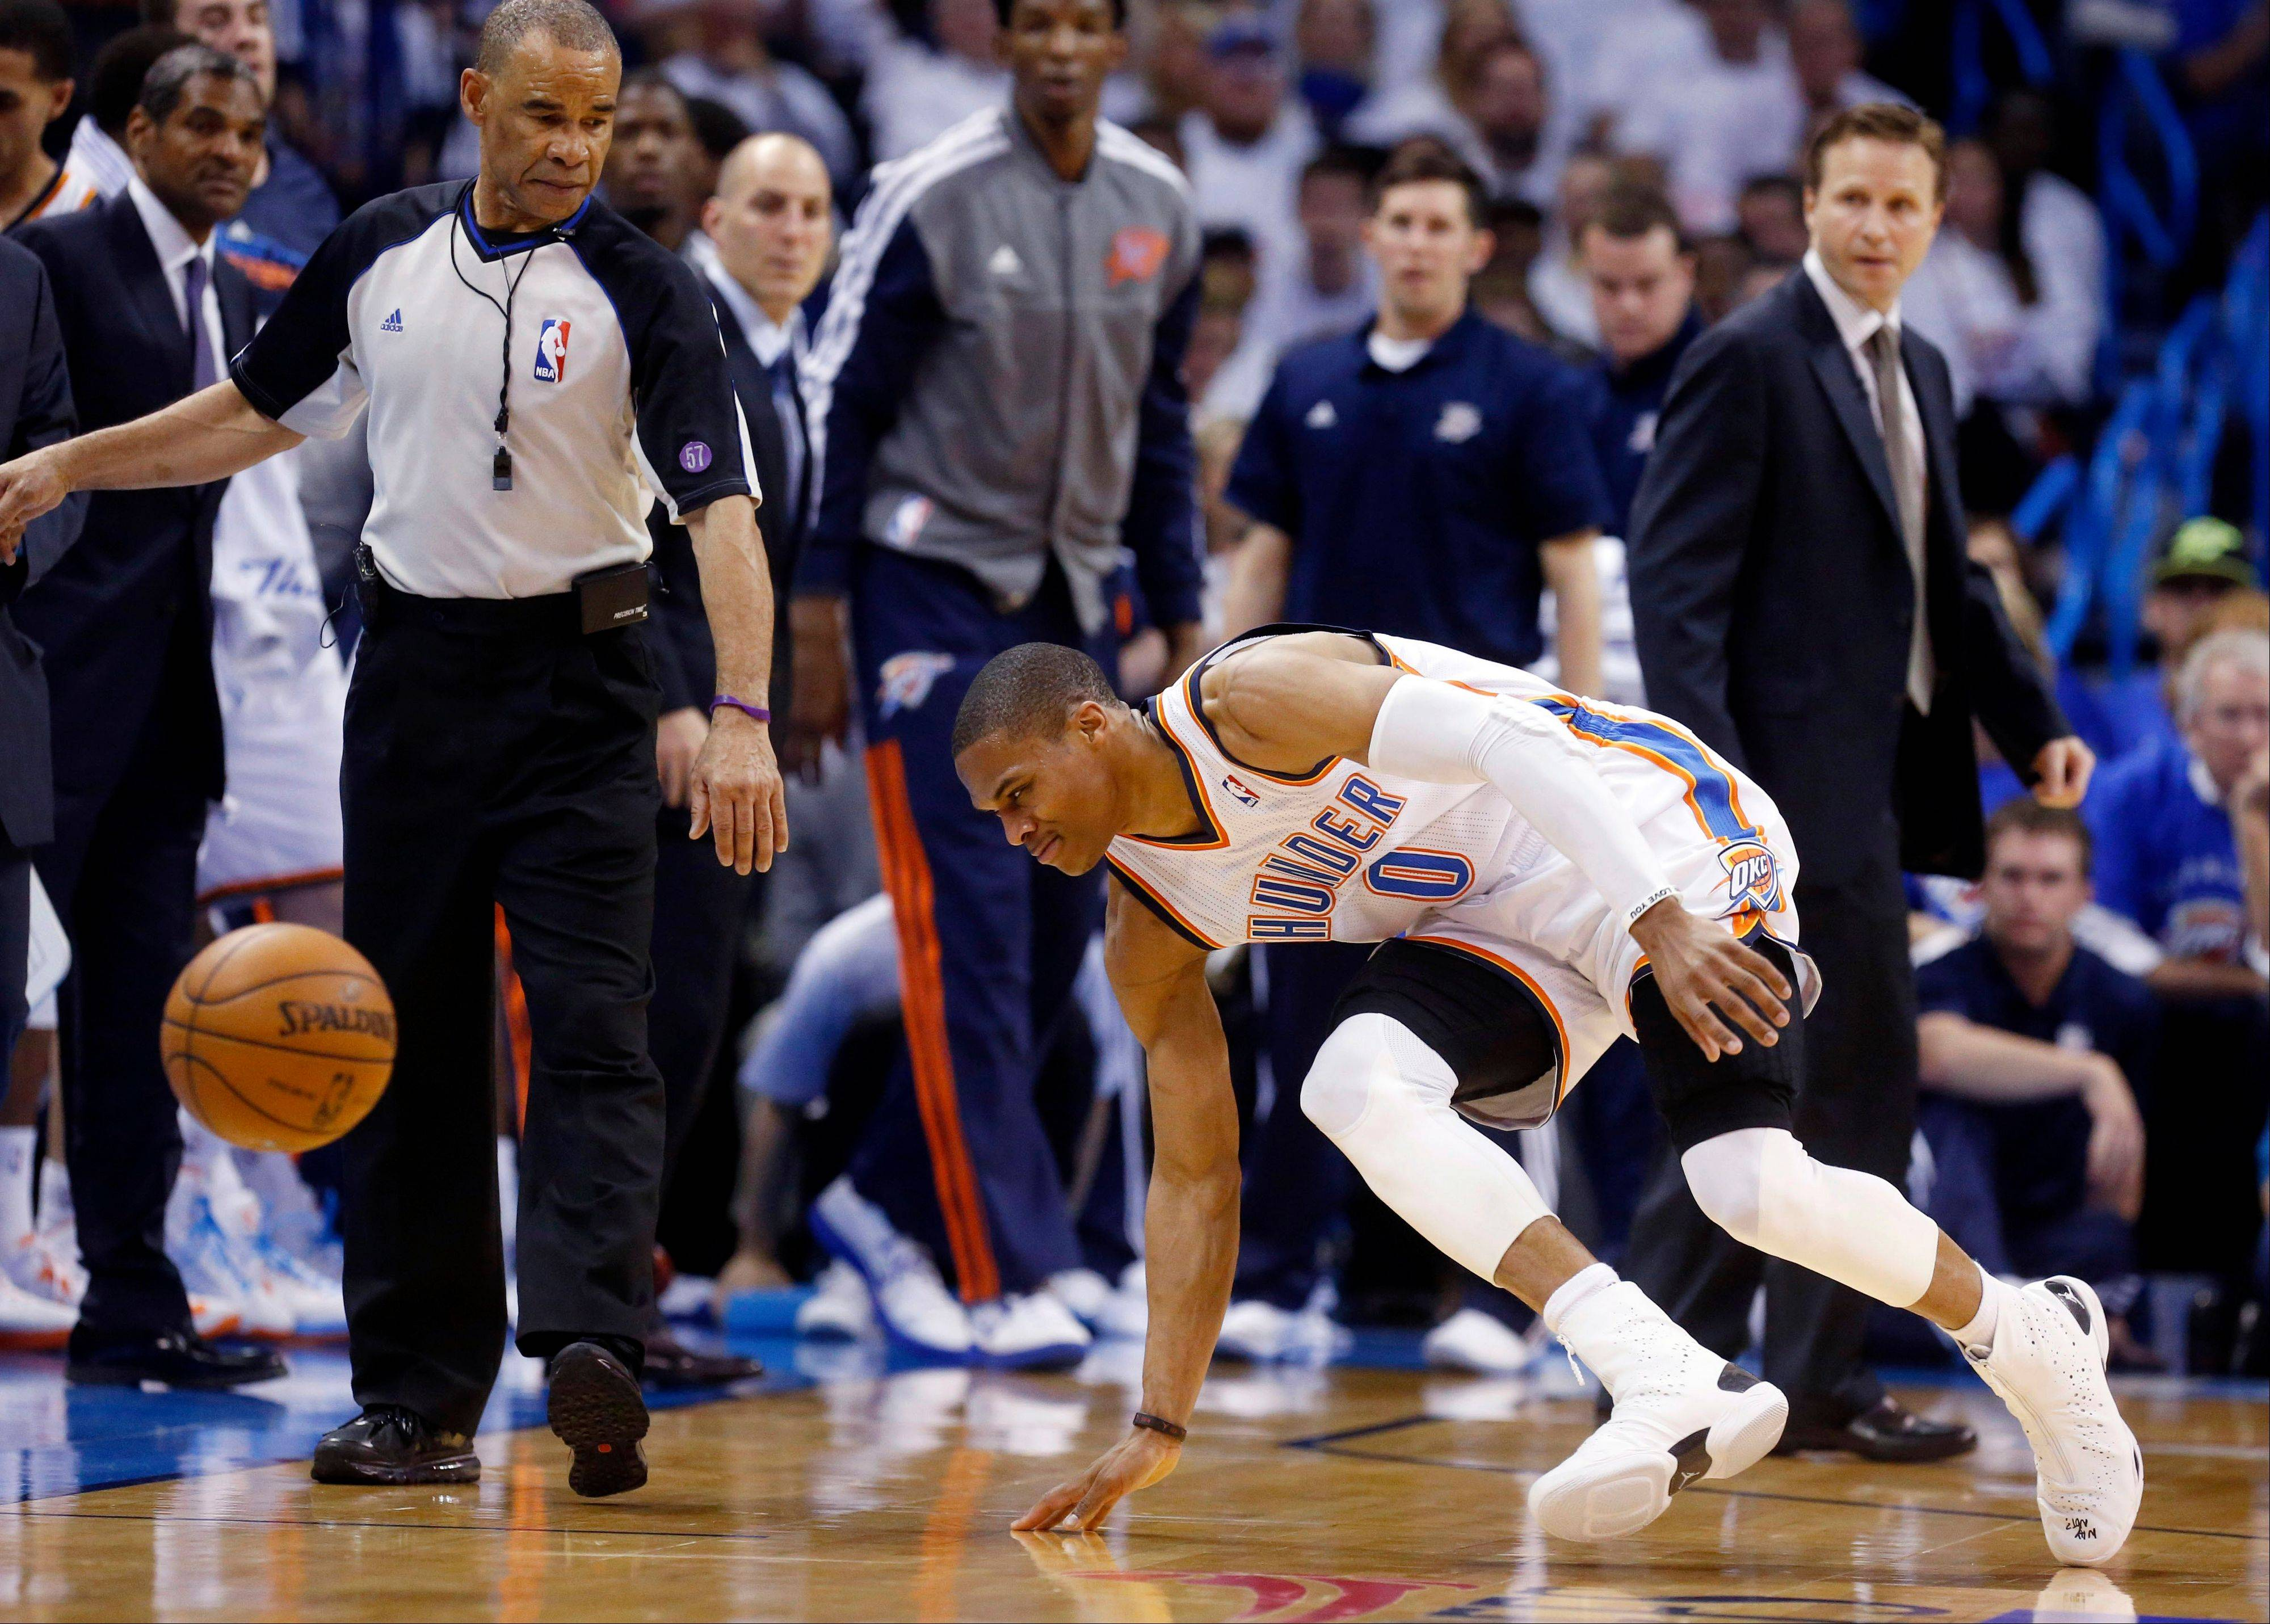 Mohammed concerned for injured Westbrook